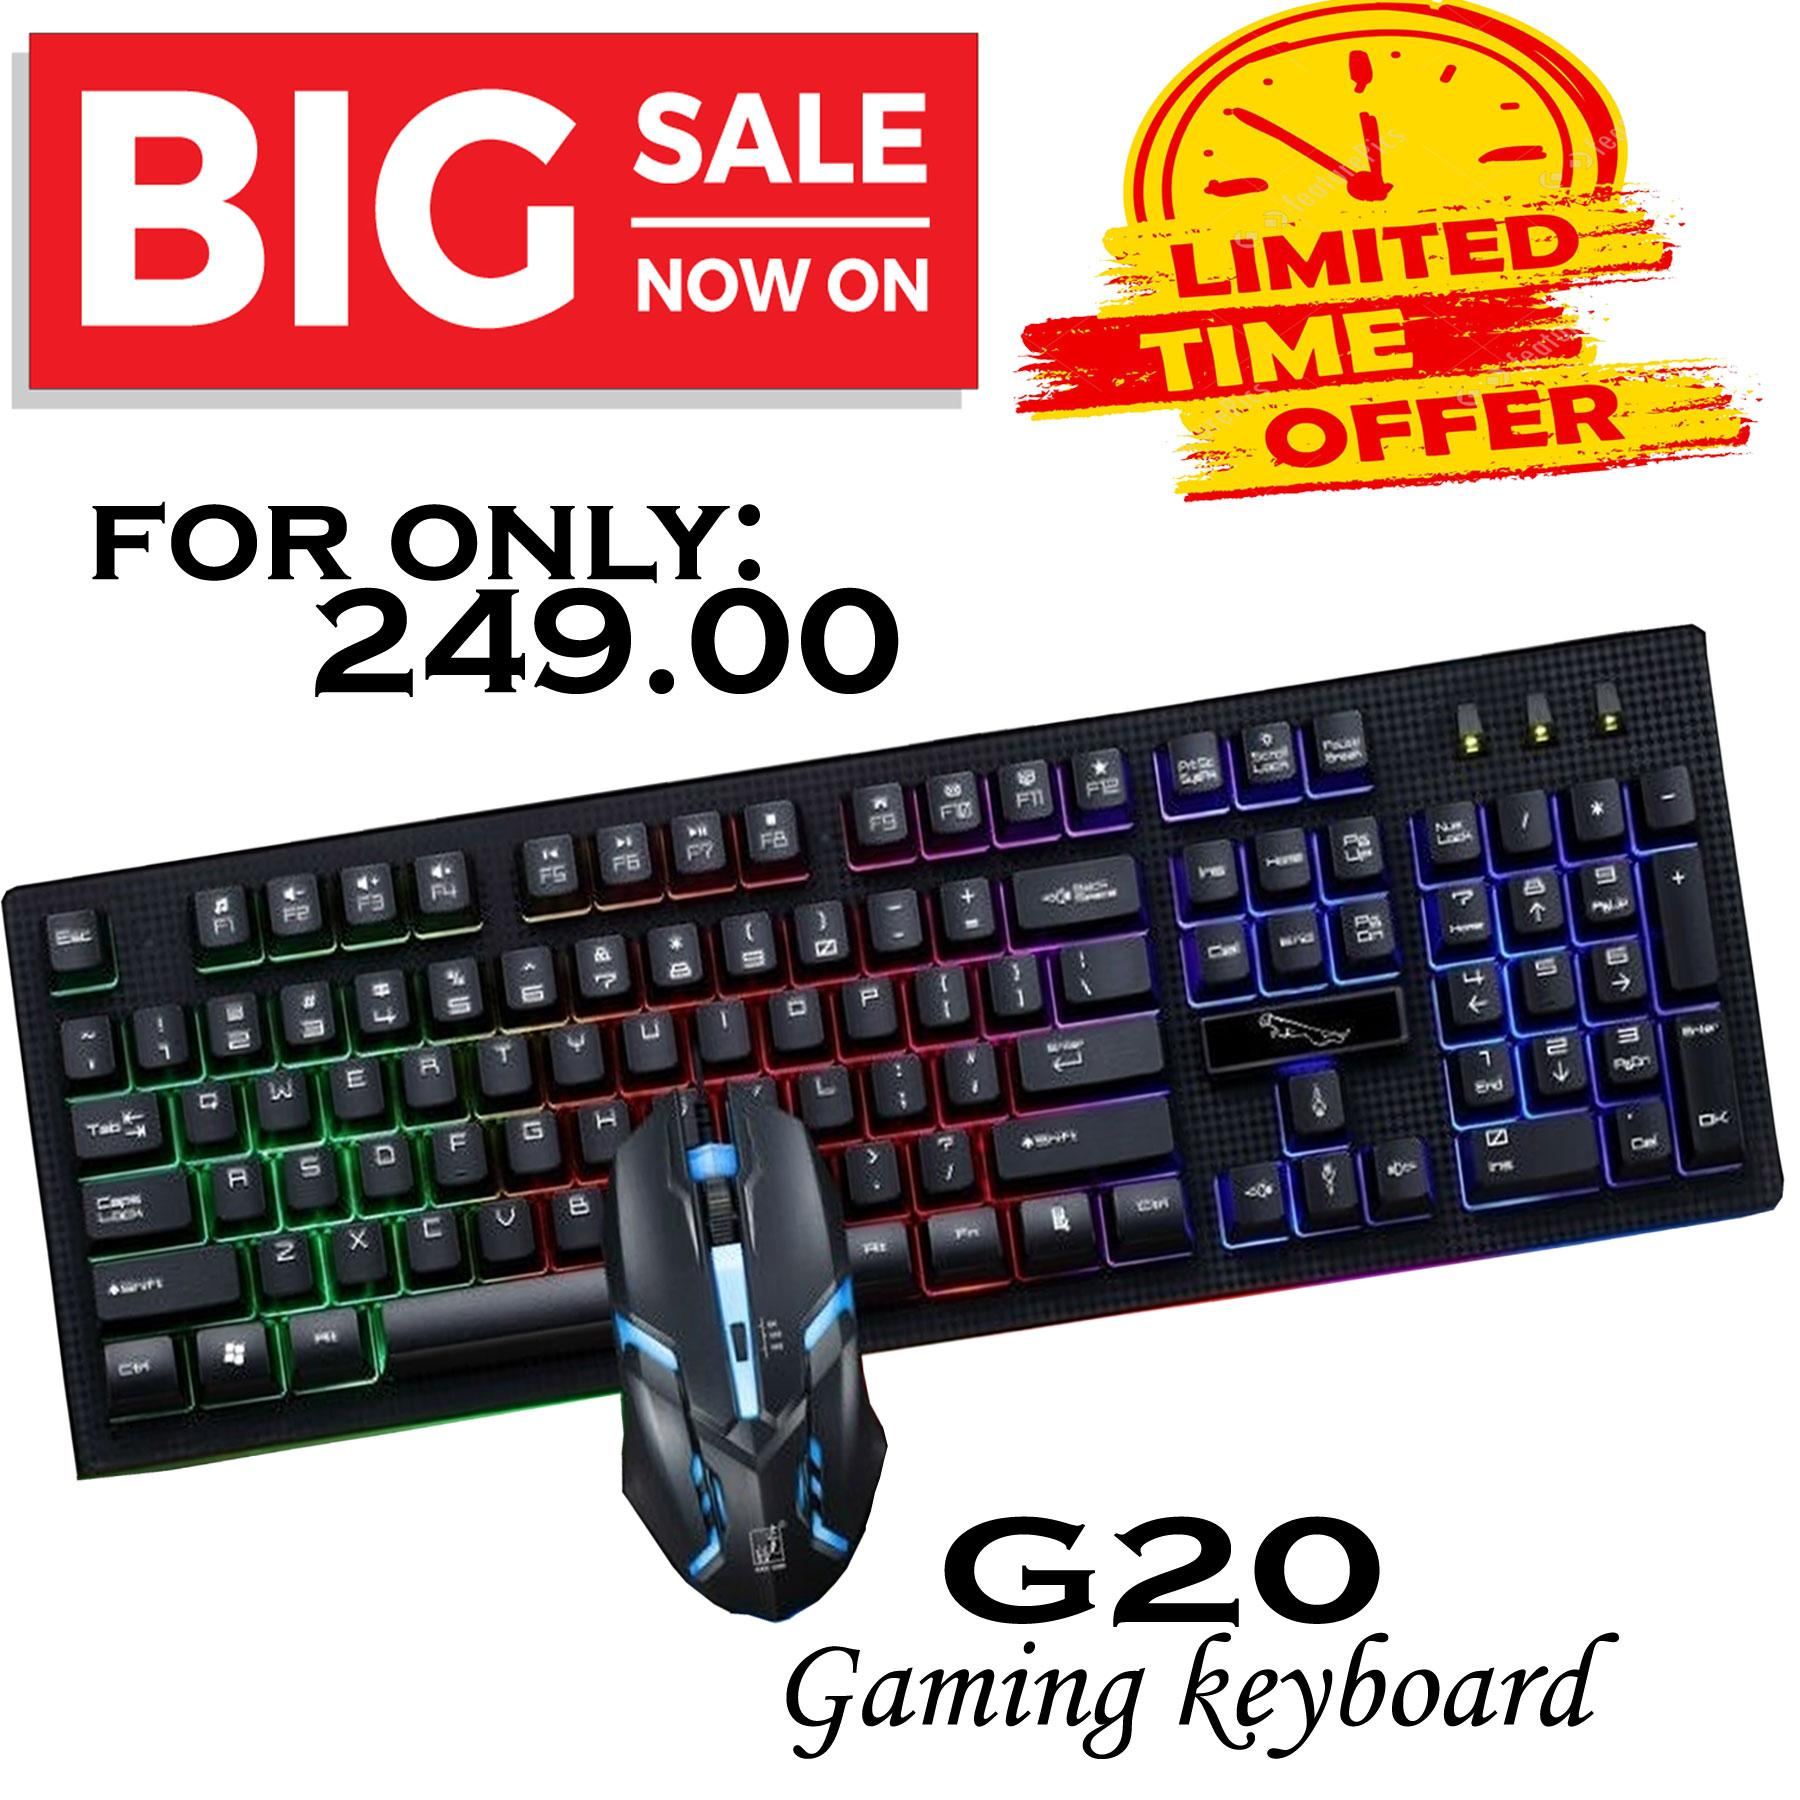 50b263996c2 AWEADN G20 Backlight LED Pro Gaming Keyboard USB Wired Powered Gamer  Keyboard With 2000 DPI Mouse